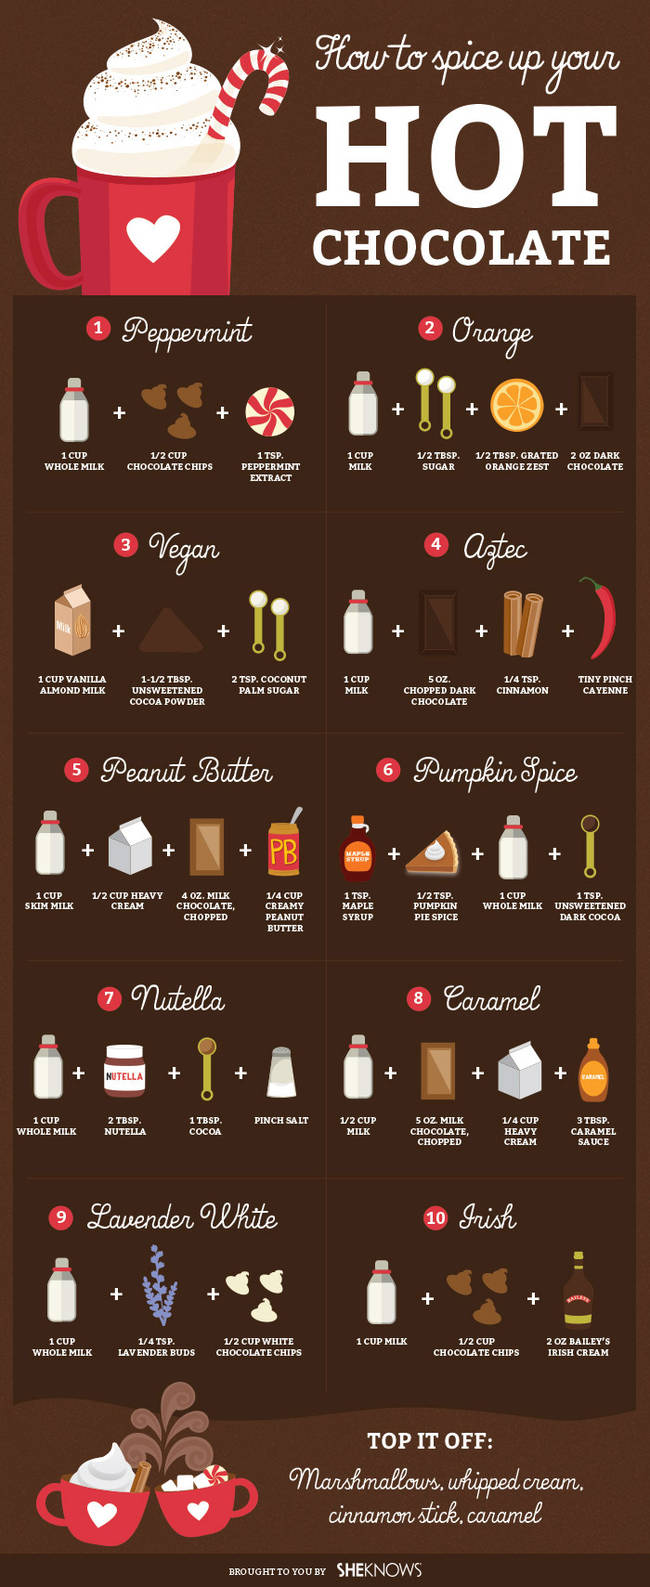 1420348156411104 Make Ordinary Hot Chocolate EXTRAordinary By Using These 6 Simple Tricks